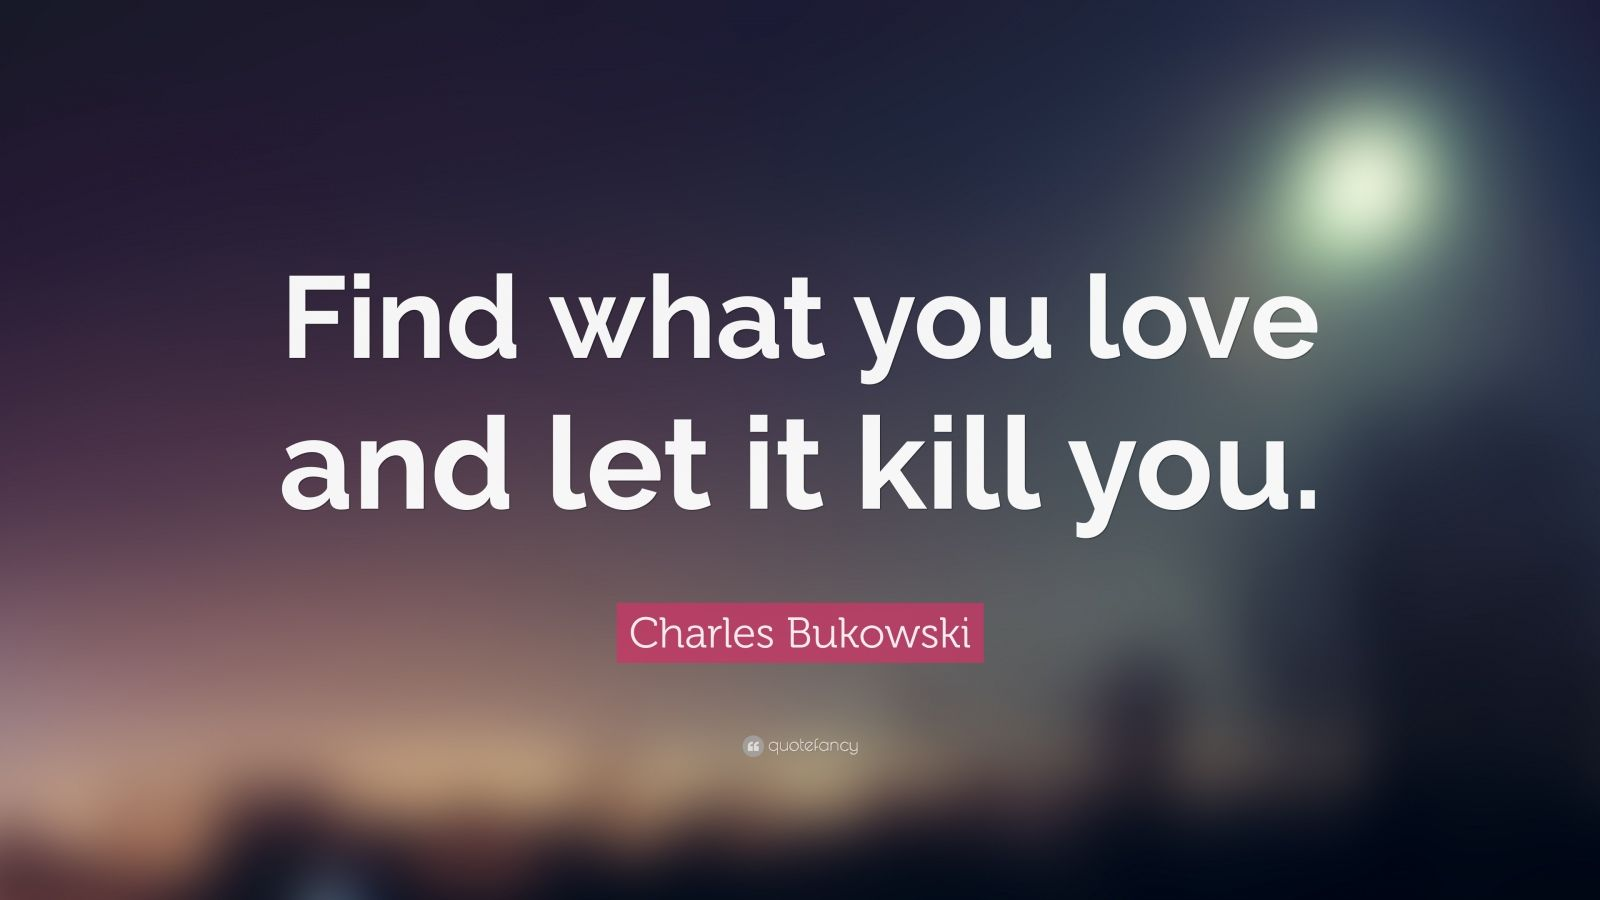 Charles Bukowski Quote: ?Find what you love and let it kill you.?